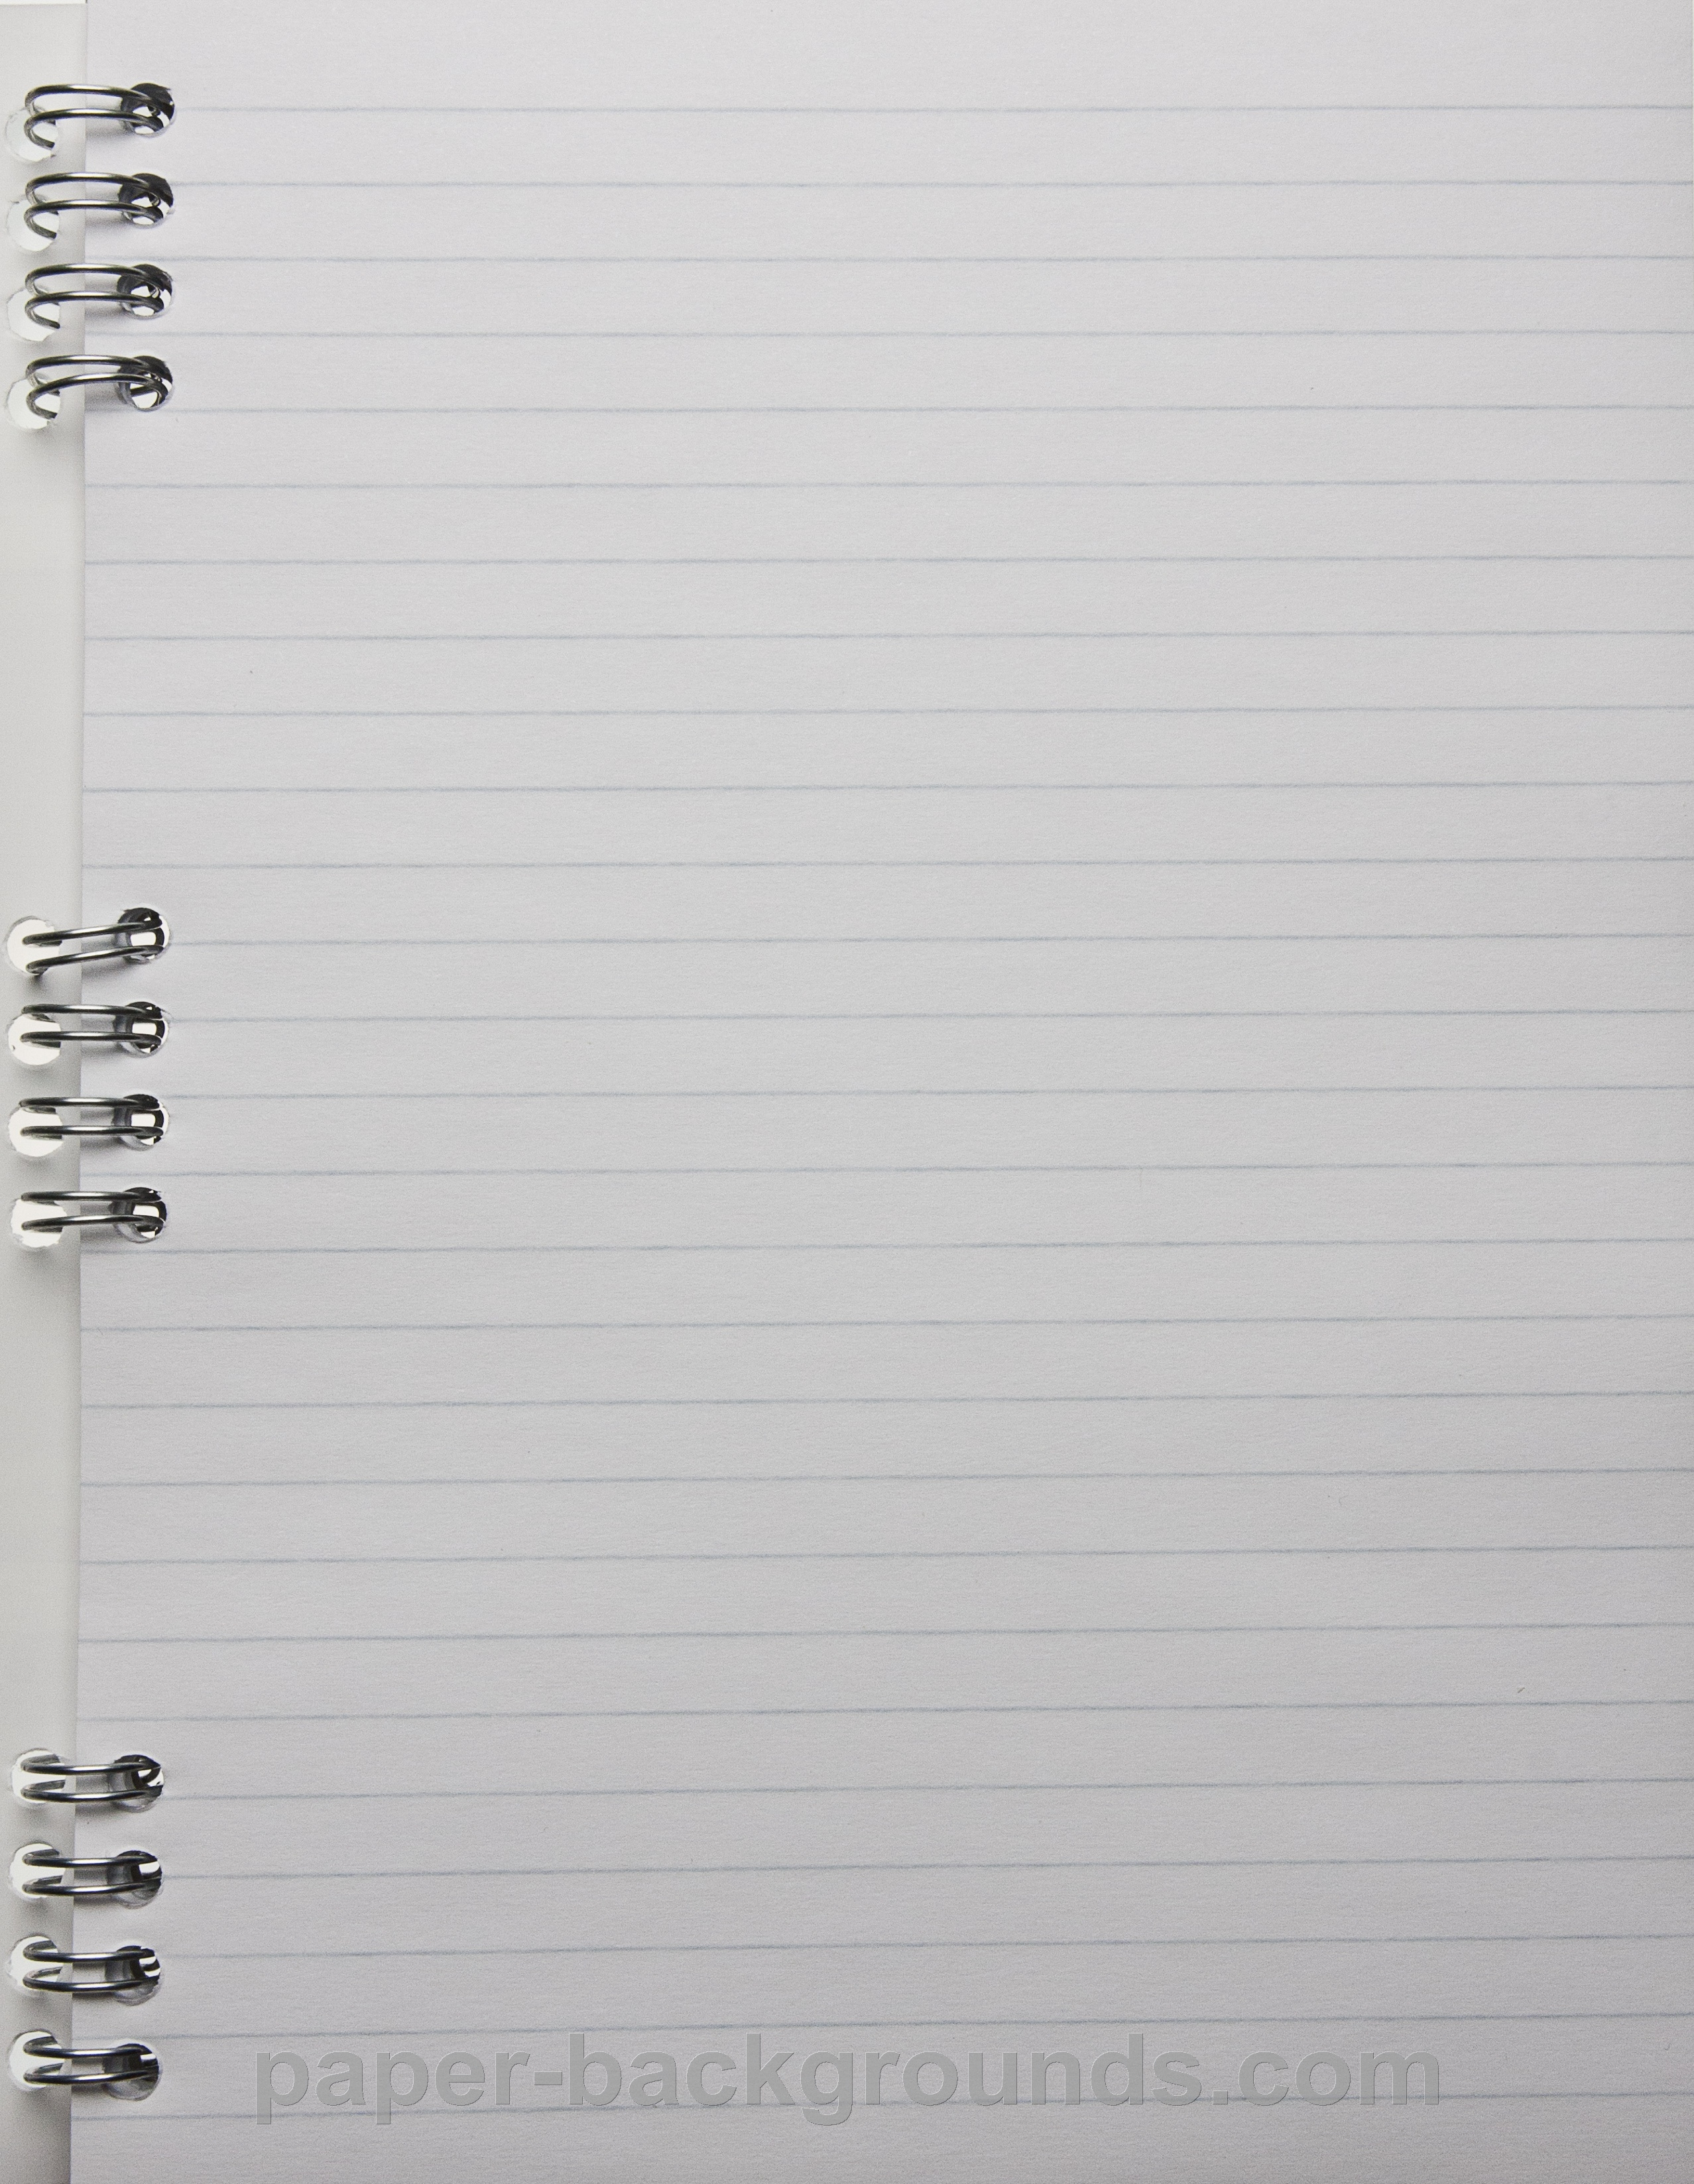 paper backgrounds whitenotebookpagewithlines